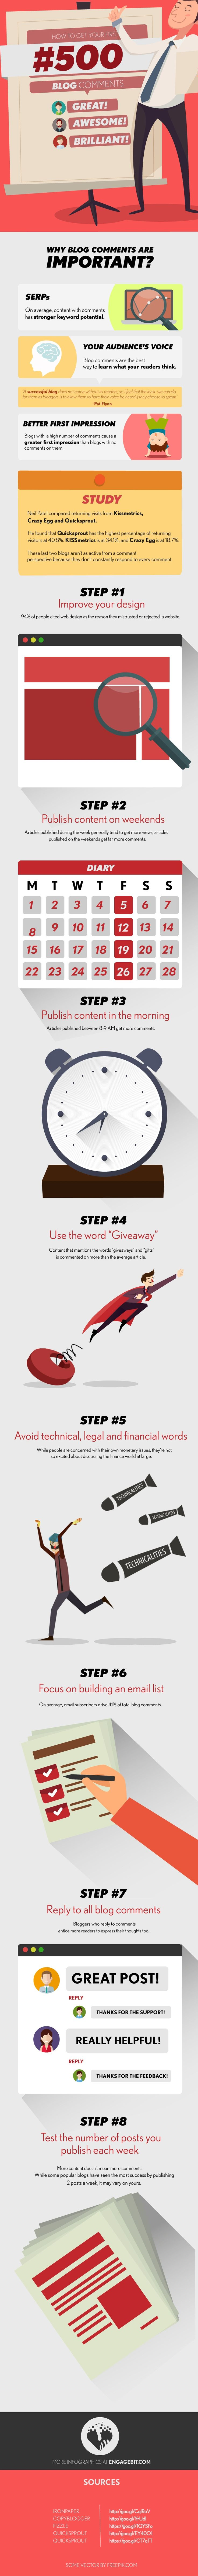 infographic-on-how-to-boost-blog-comments